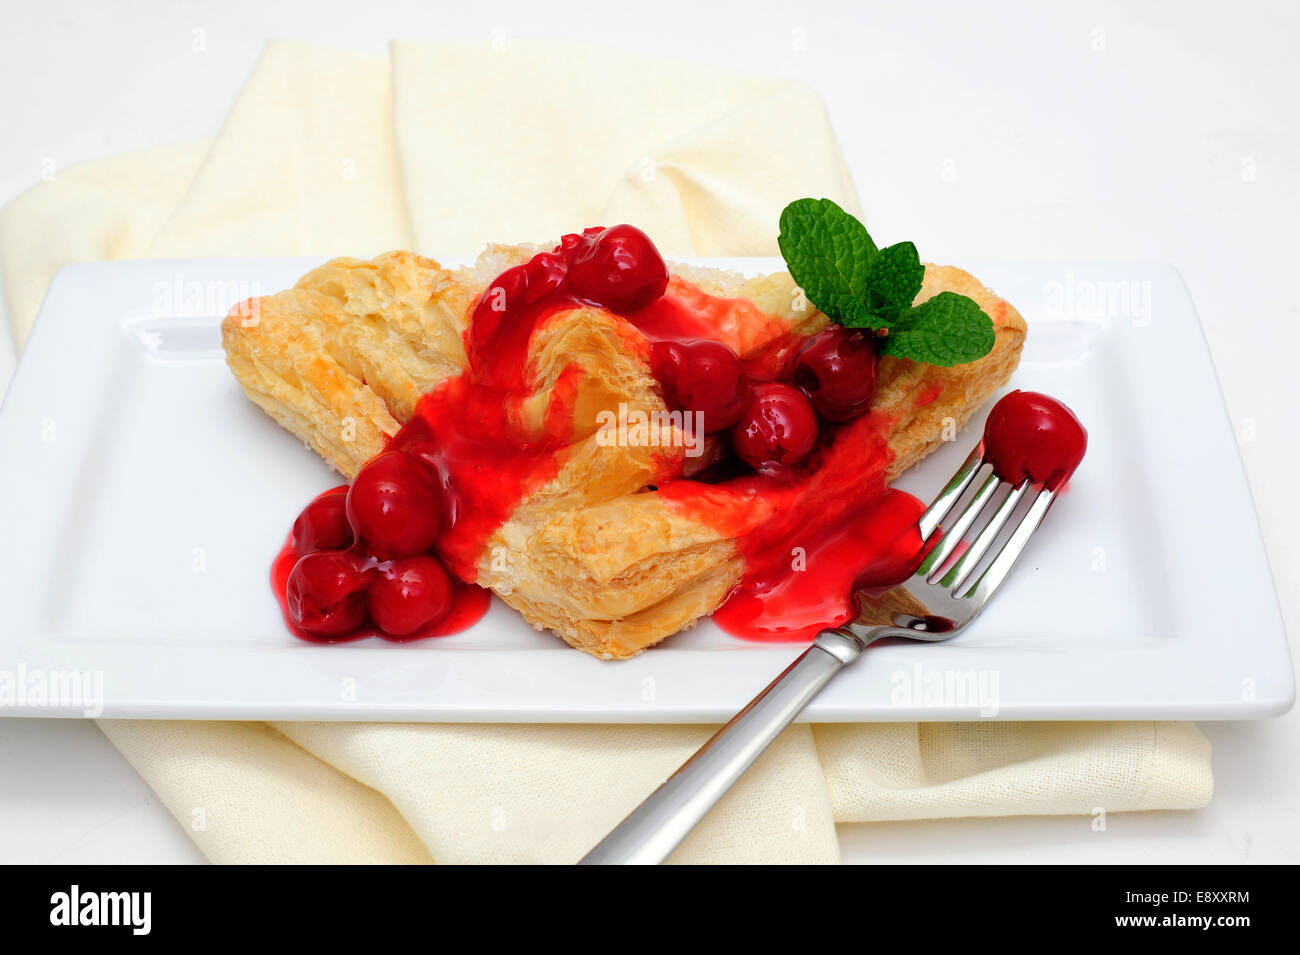 Turnover Topped With Cherries - Stock Image